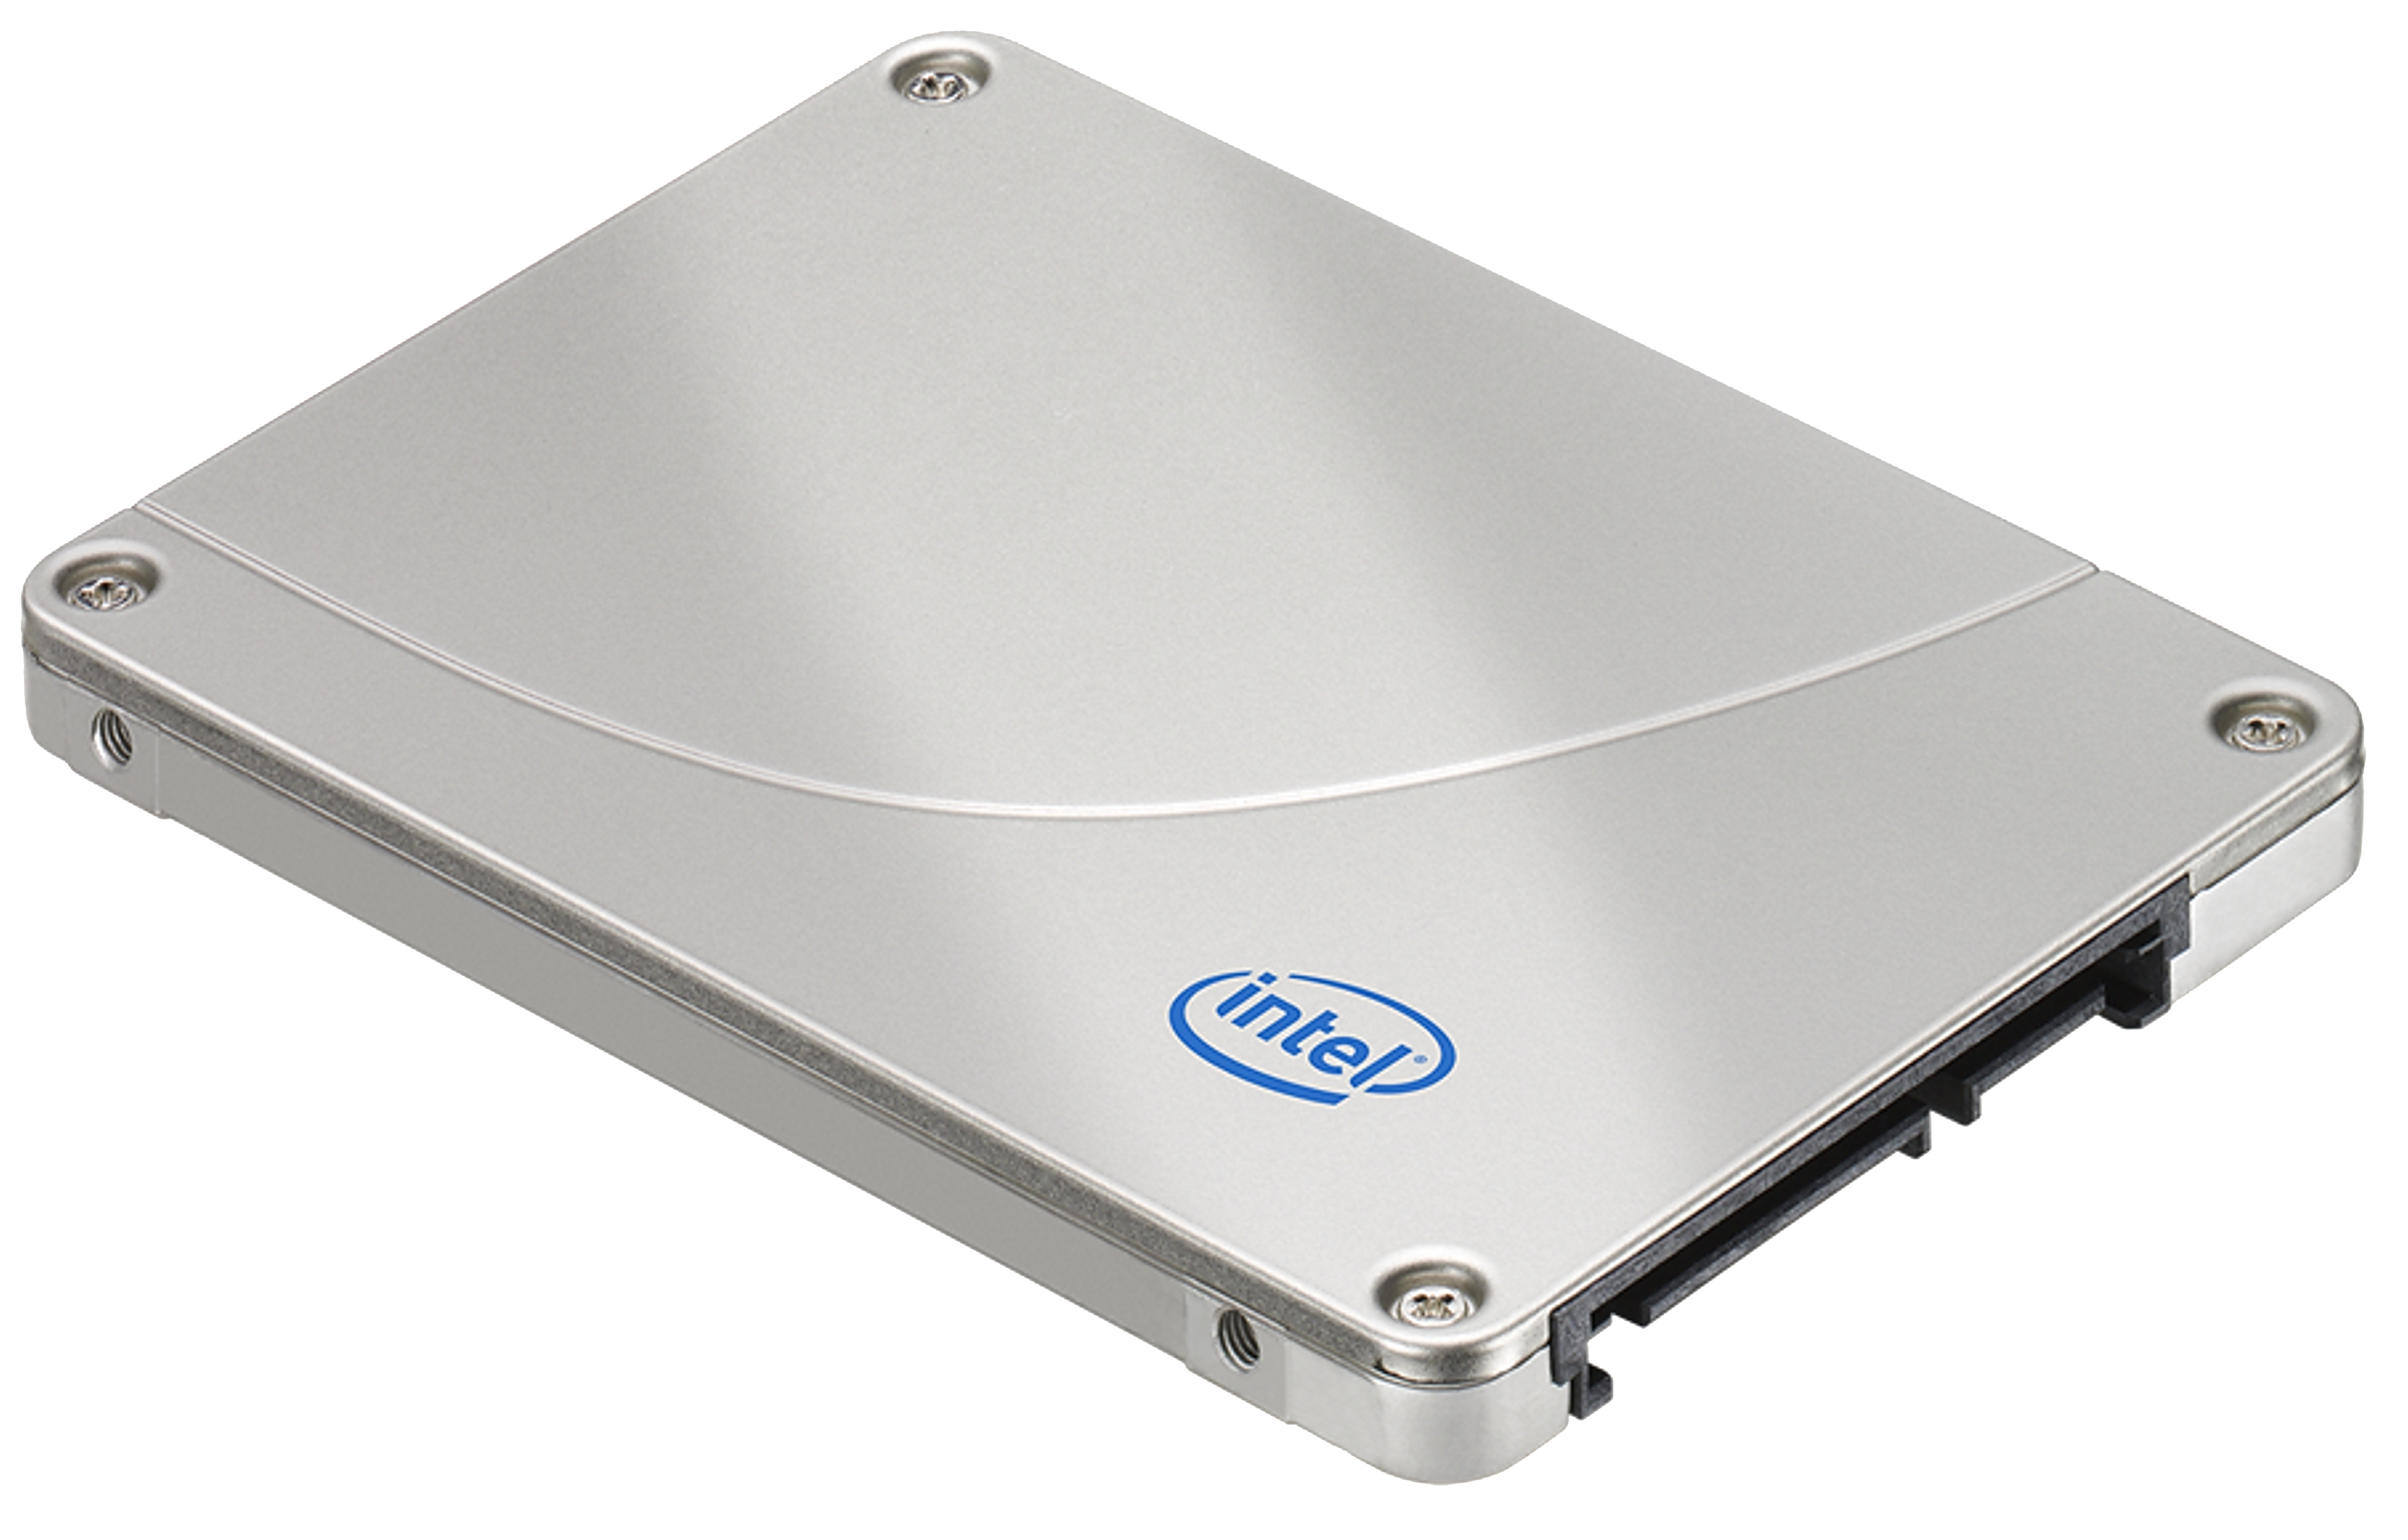 Must Prefer Solid State Drive(SSD)